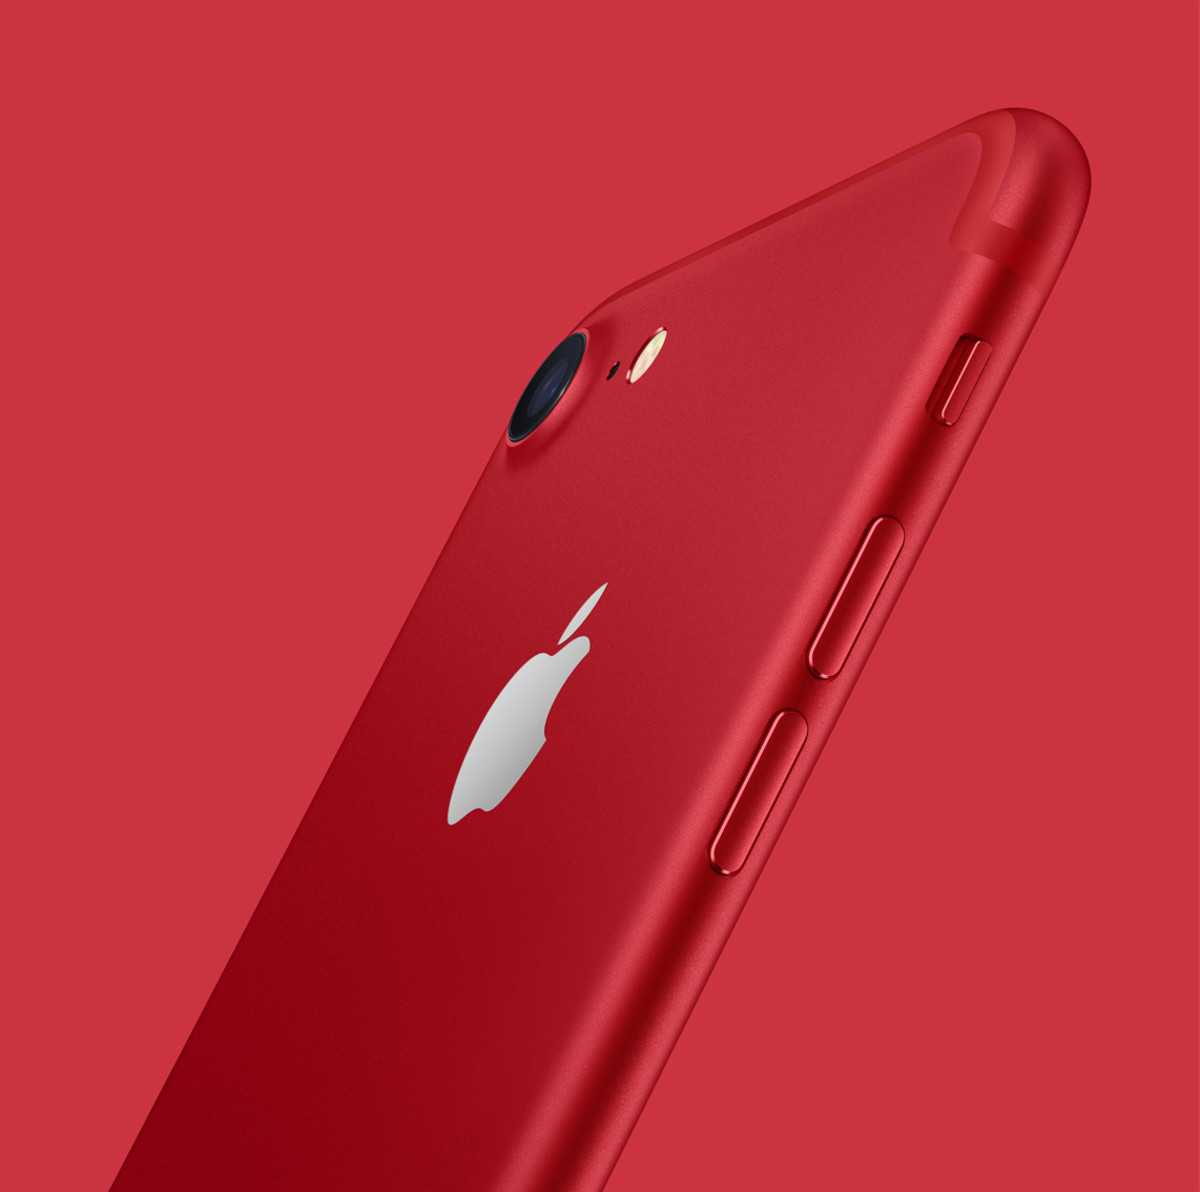 apple-iphone-7-product-red-special-edition-02